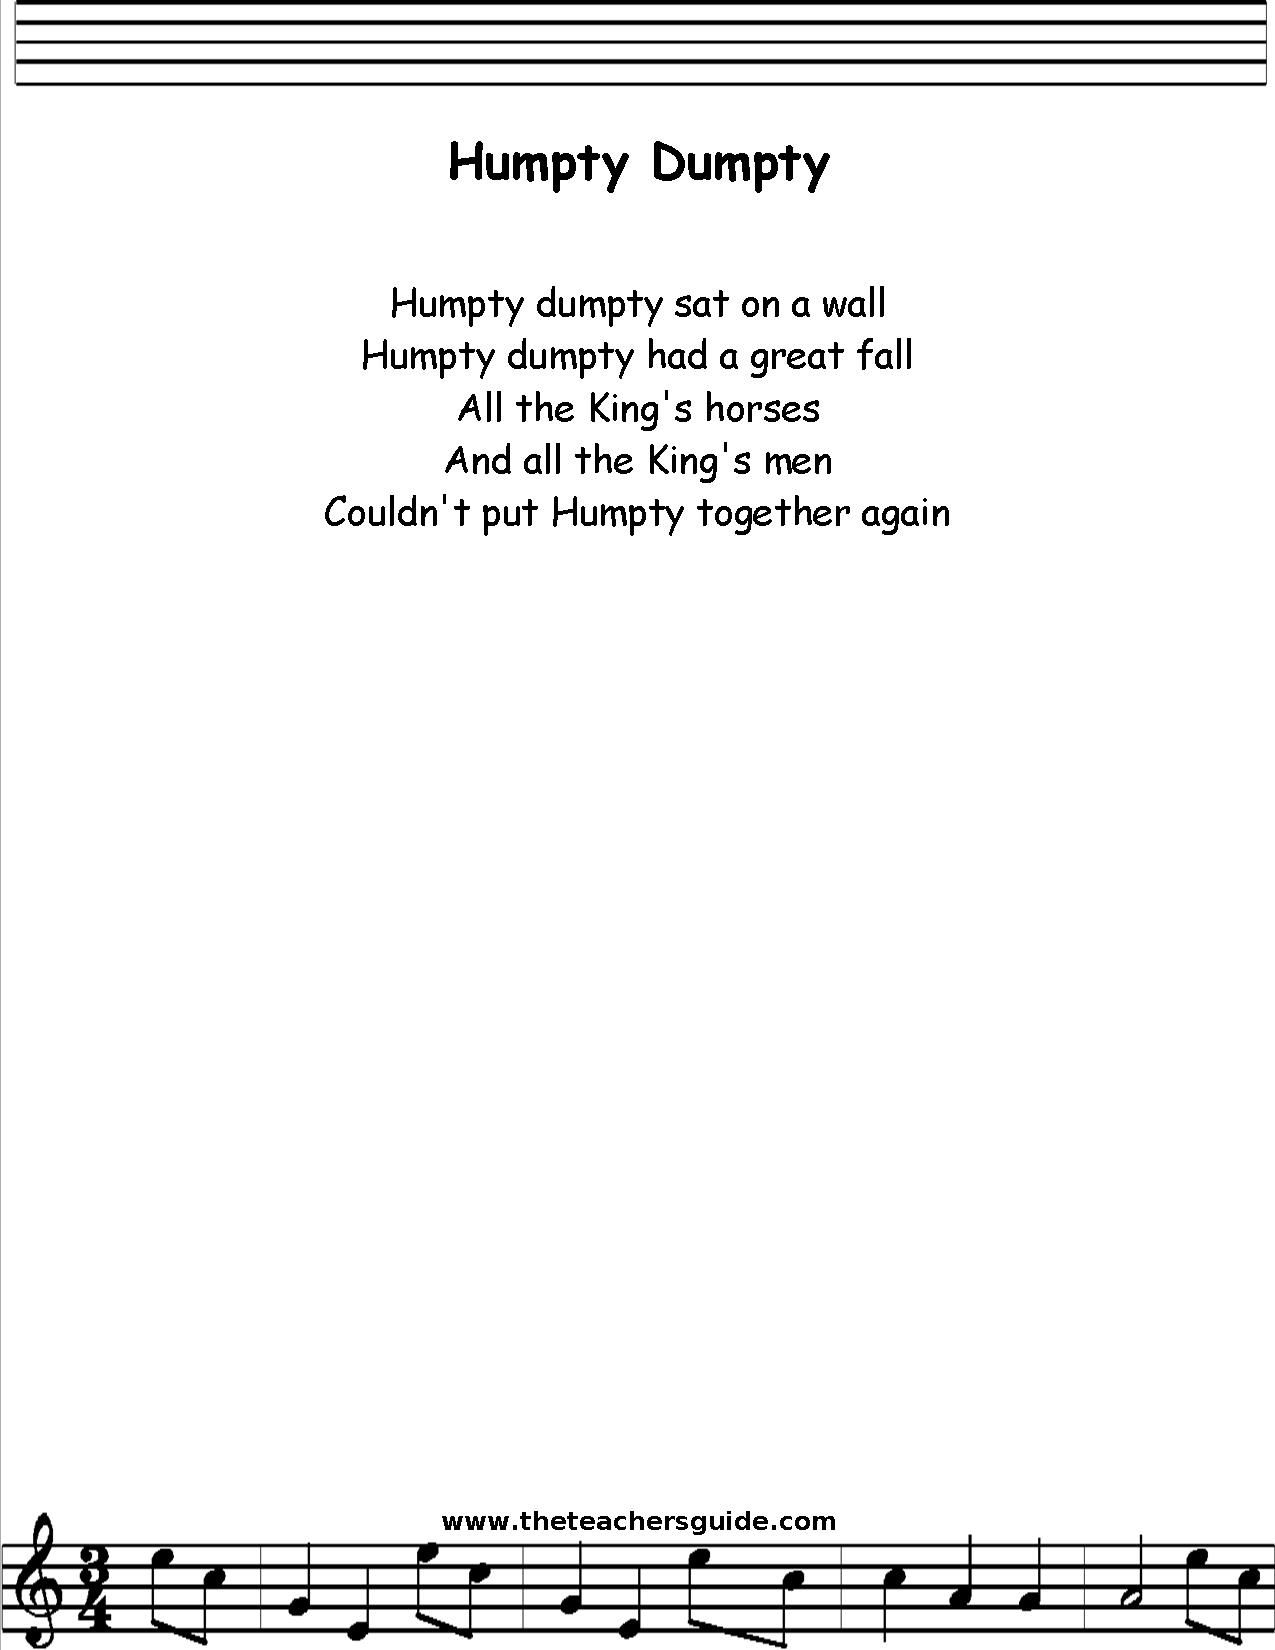 Humpty Dumpty Lyrics Printout